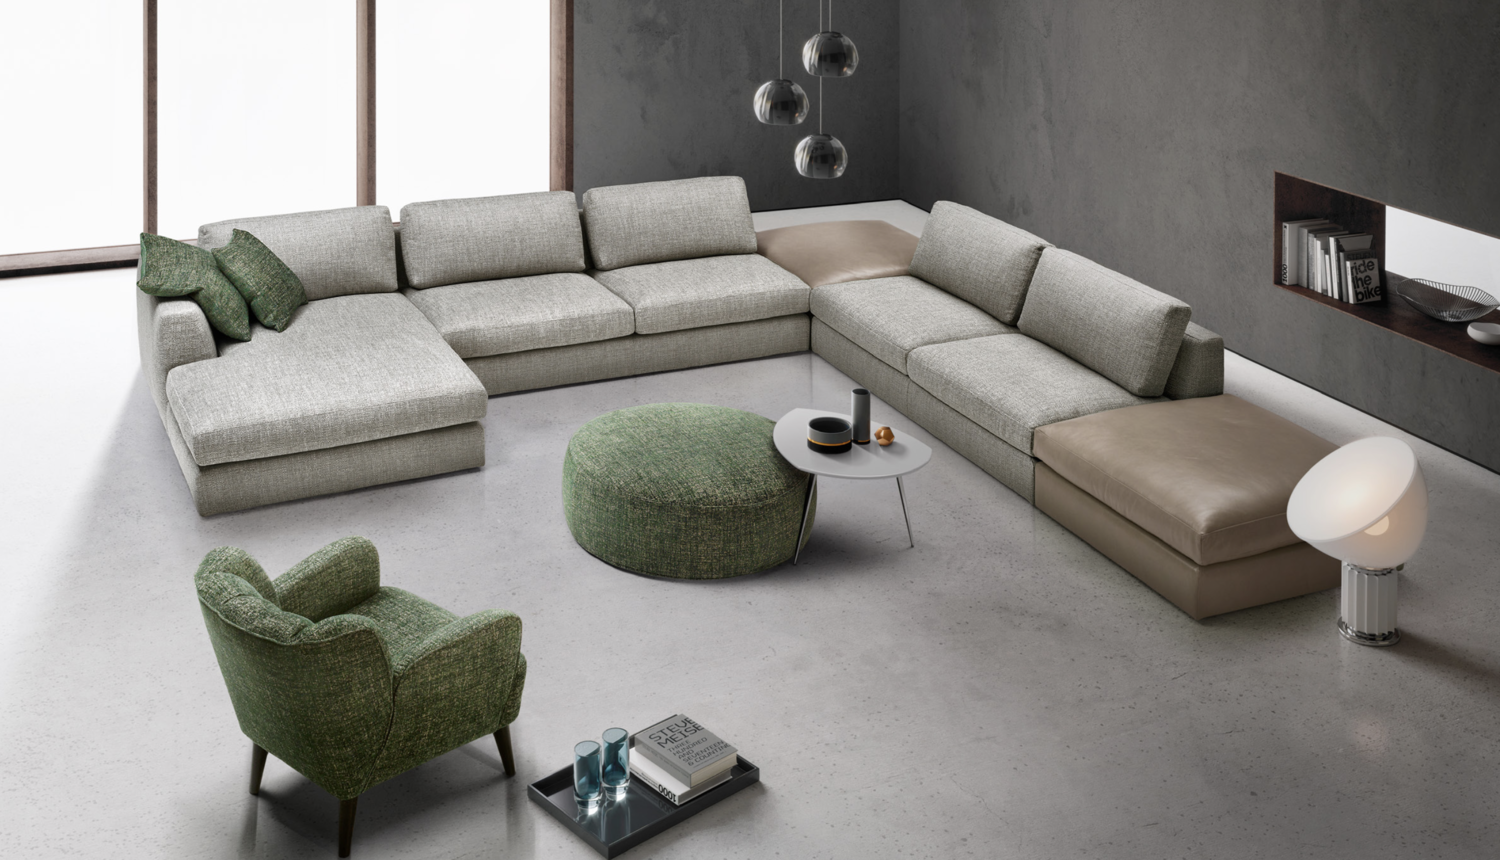 Italian sectional sofa furniture modern design 2017100002 png